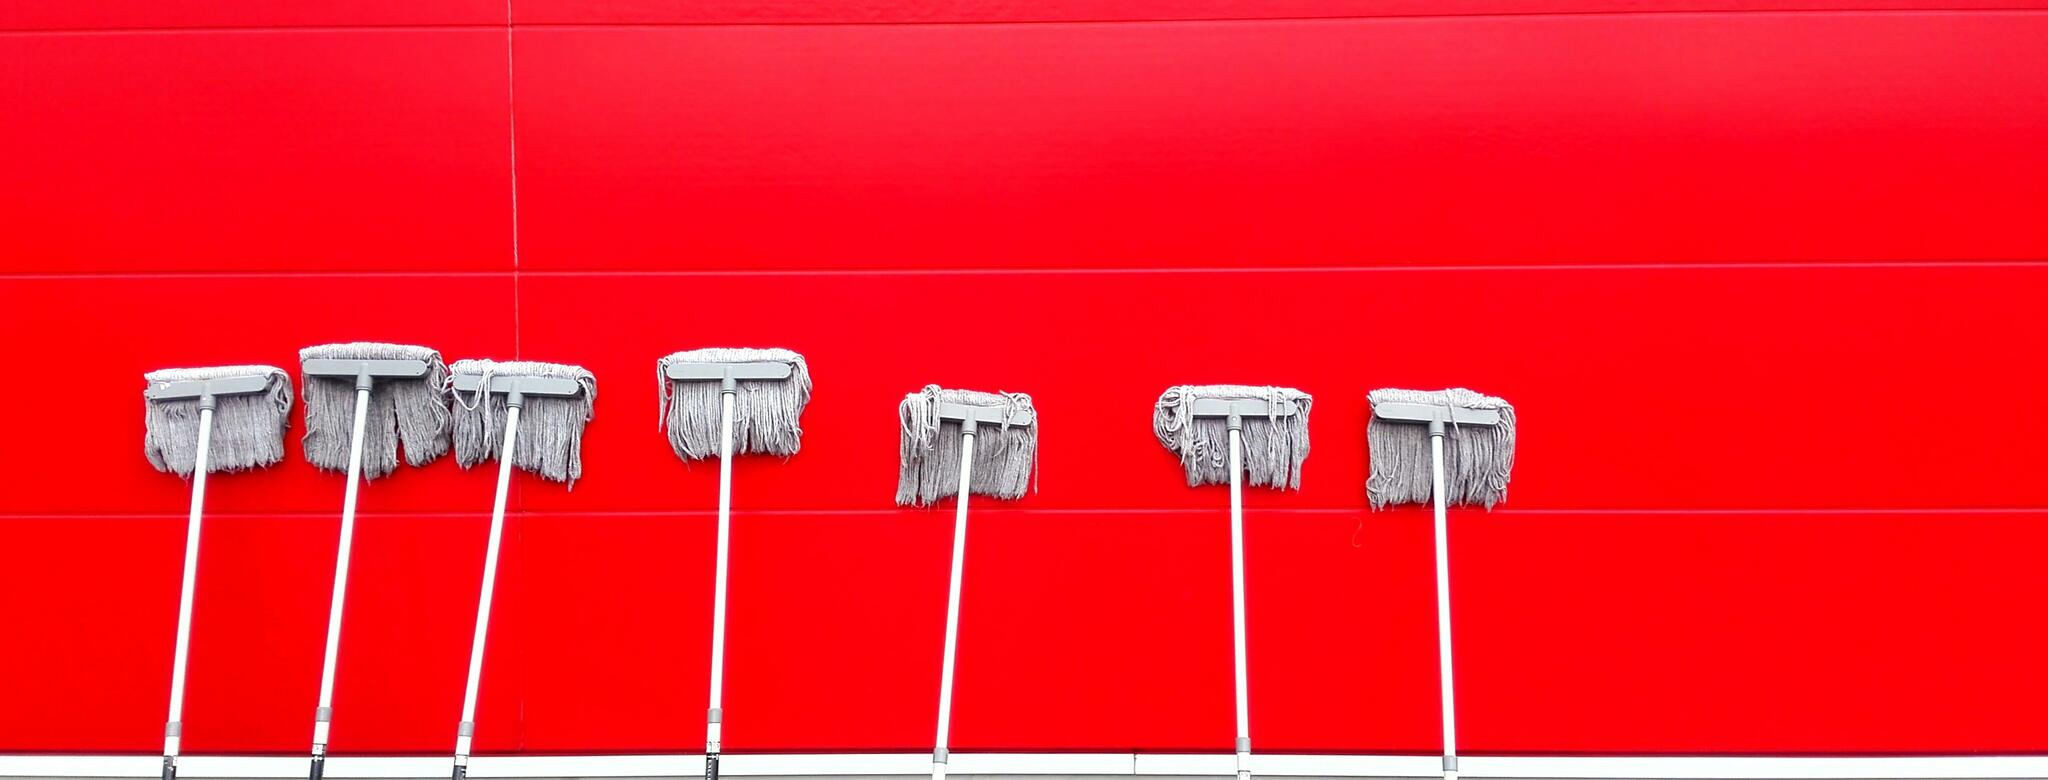 Mops against red wall